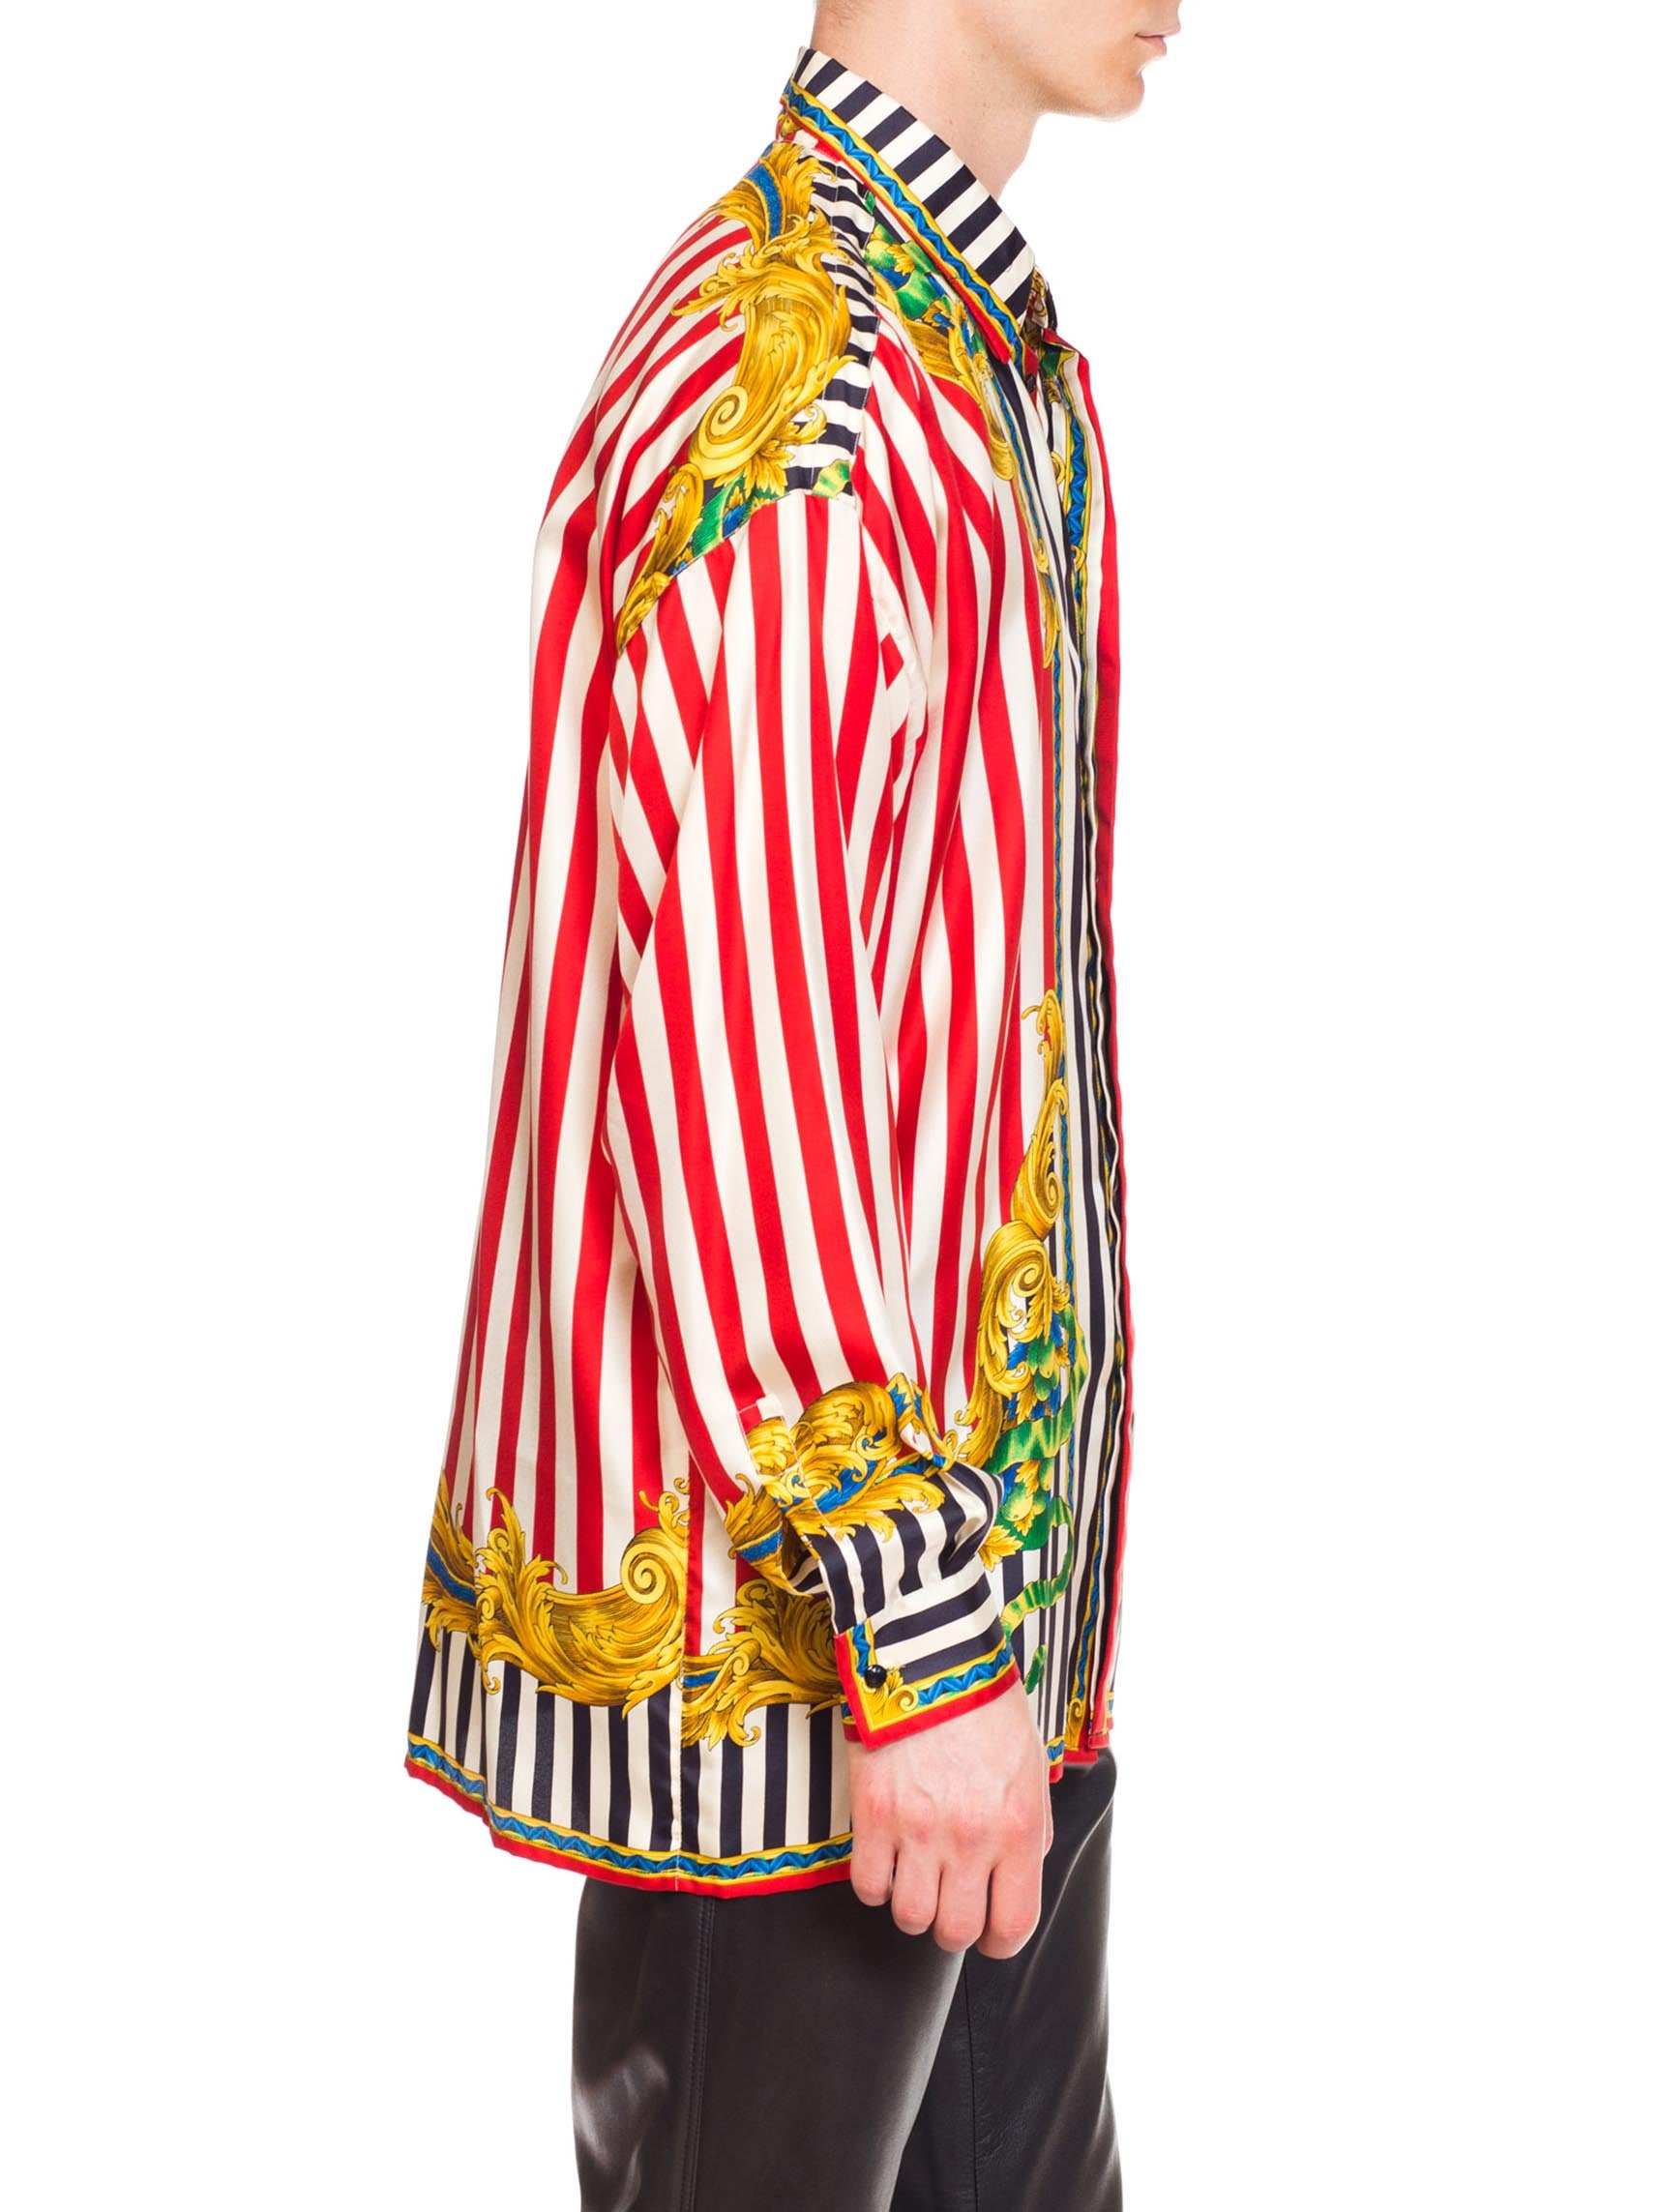 1990S GIANNI VERSACE Red & White Silk Men's Baroque Stripe Shirt